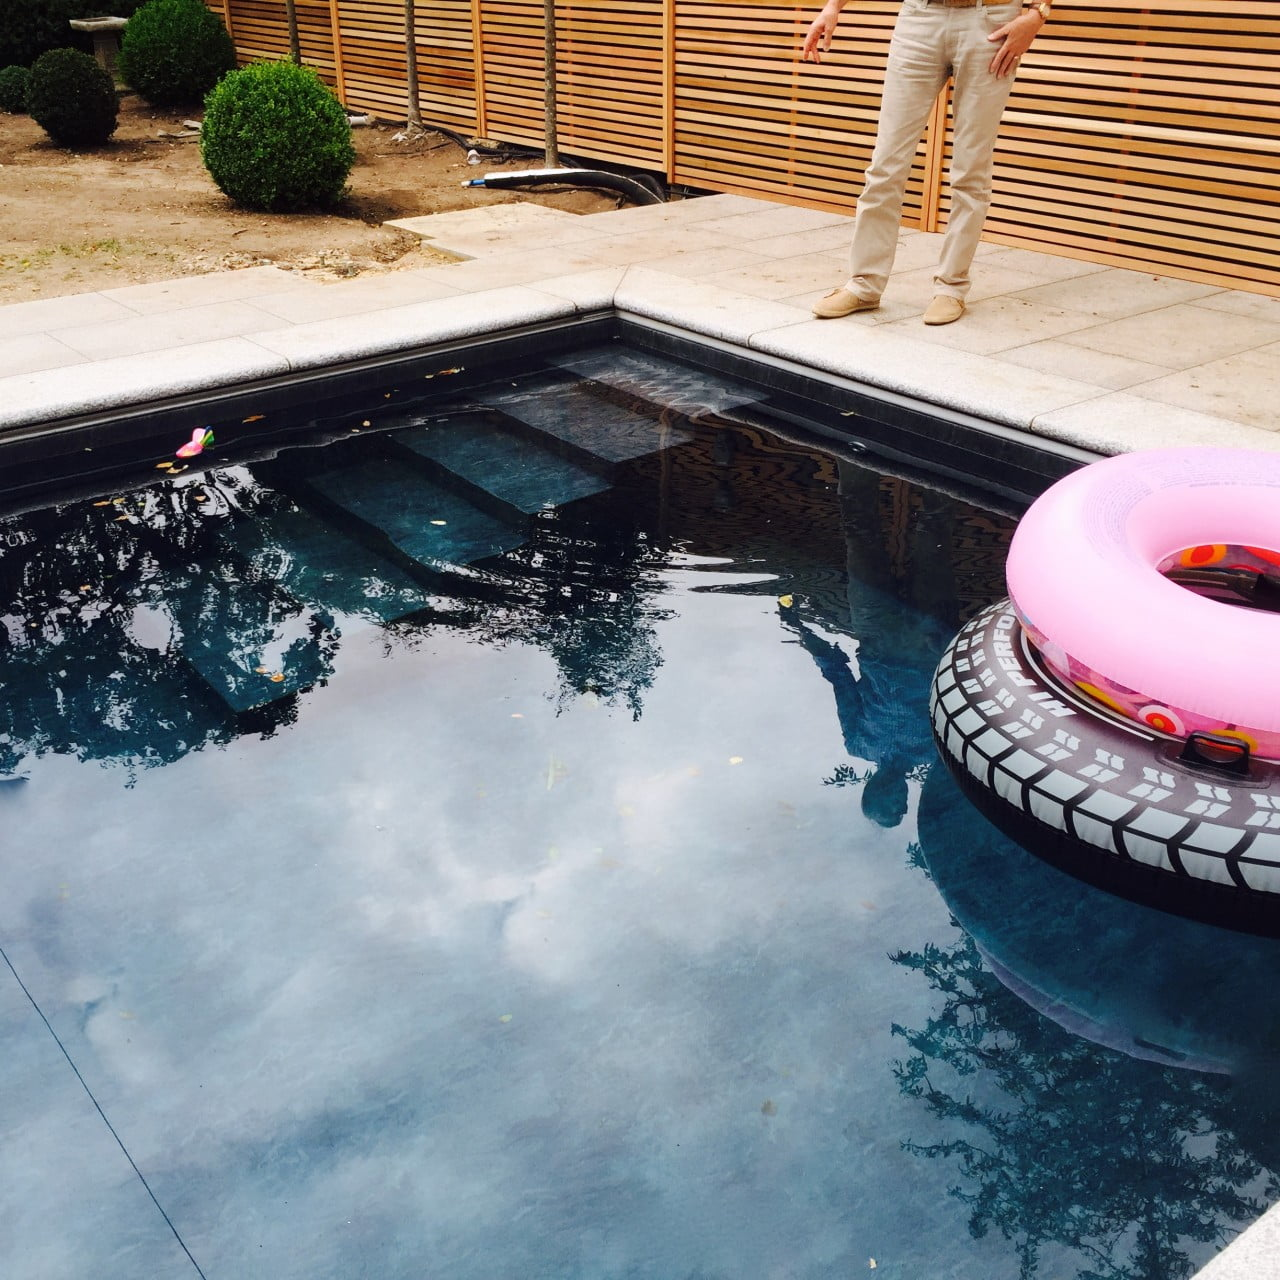 Here is the contemporary swimming pool with a slate grey liner. It looks very smart in this minimal design